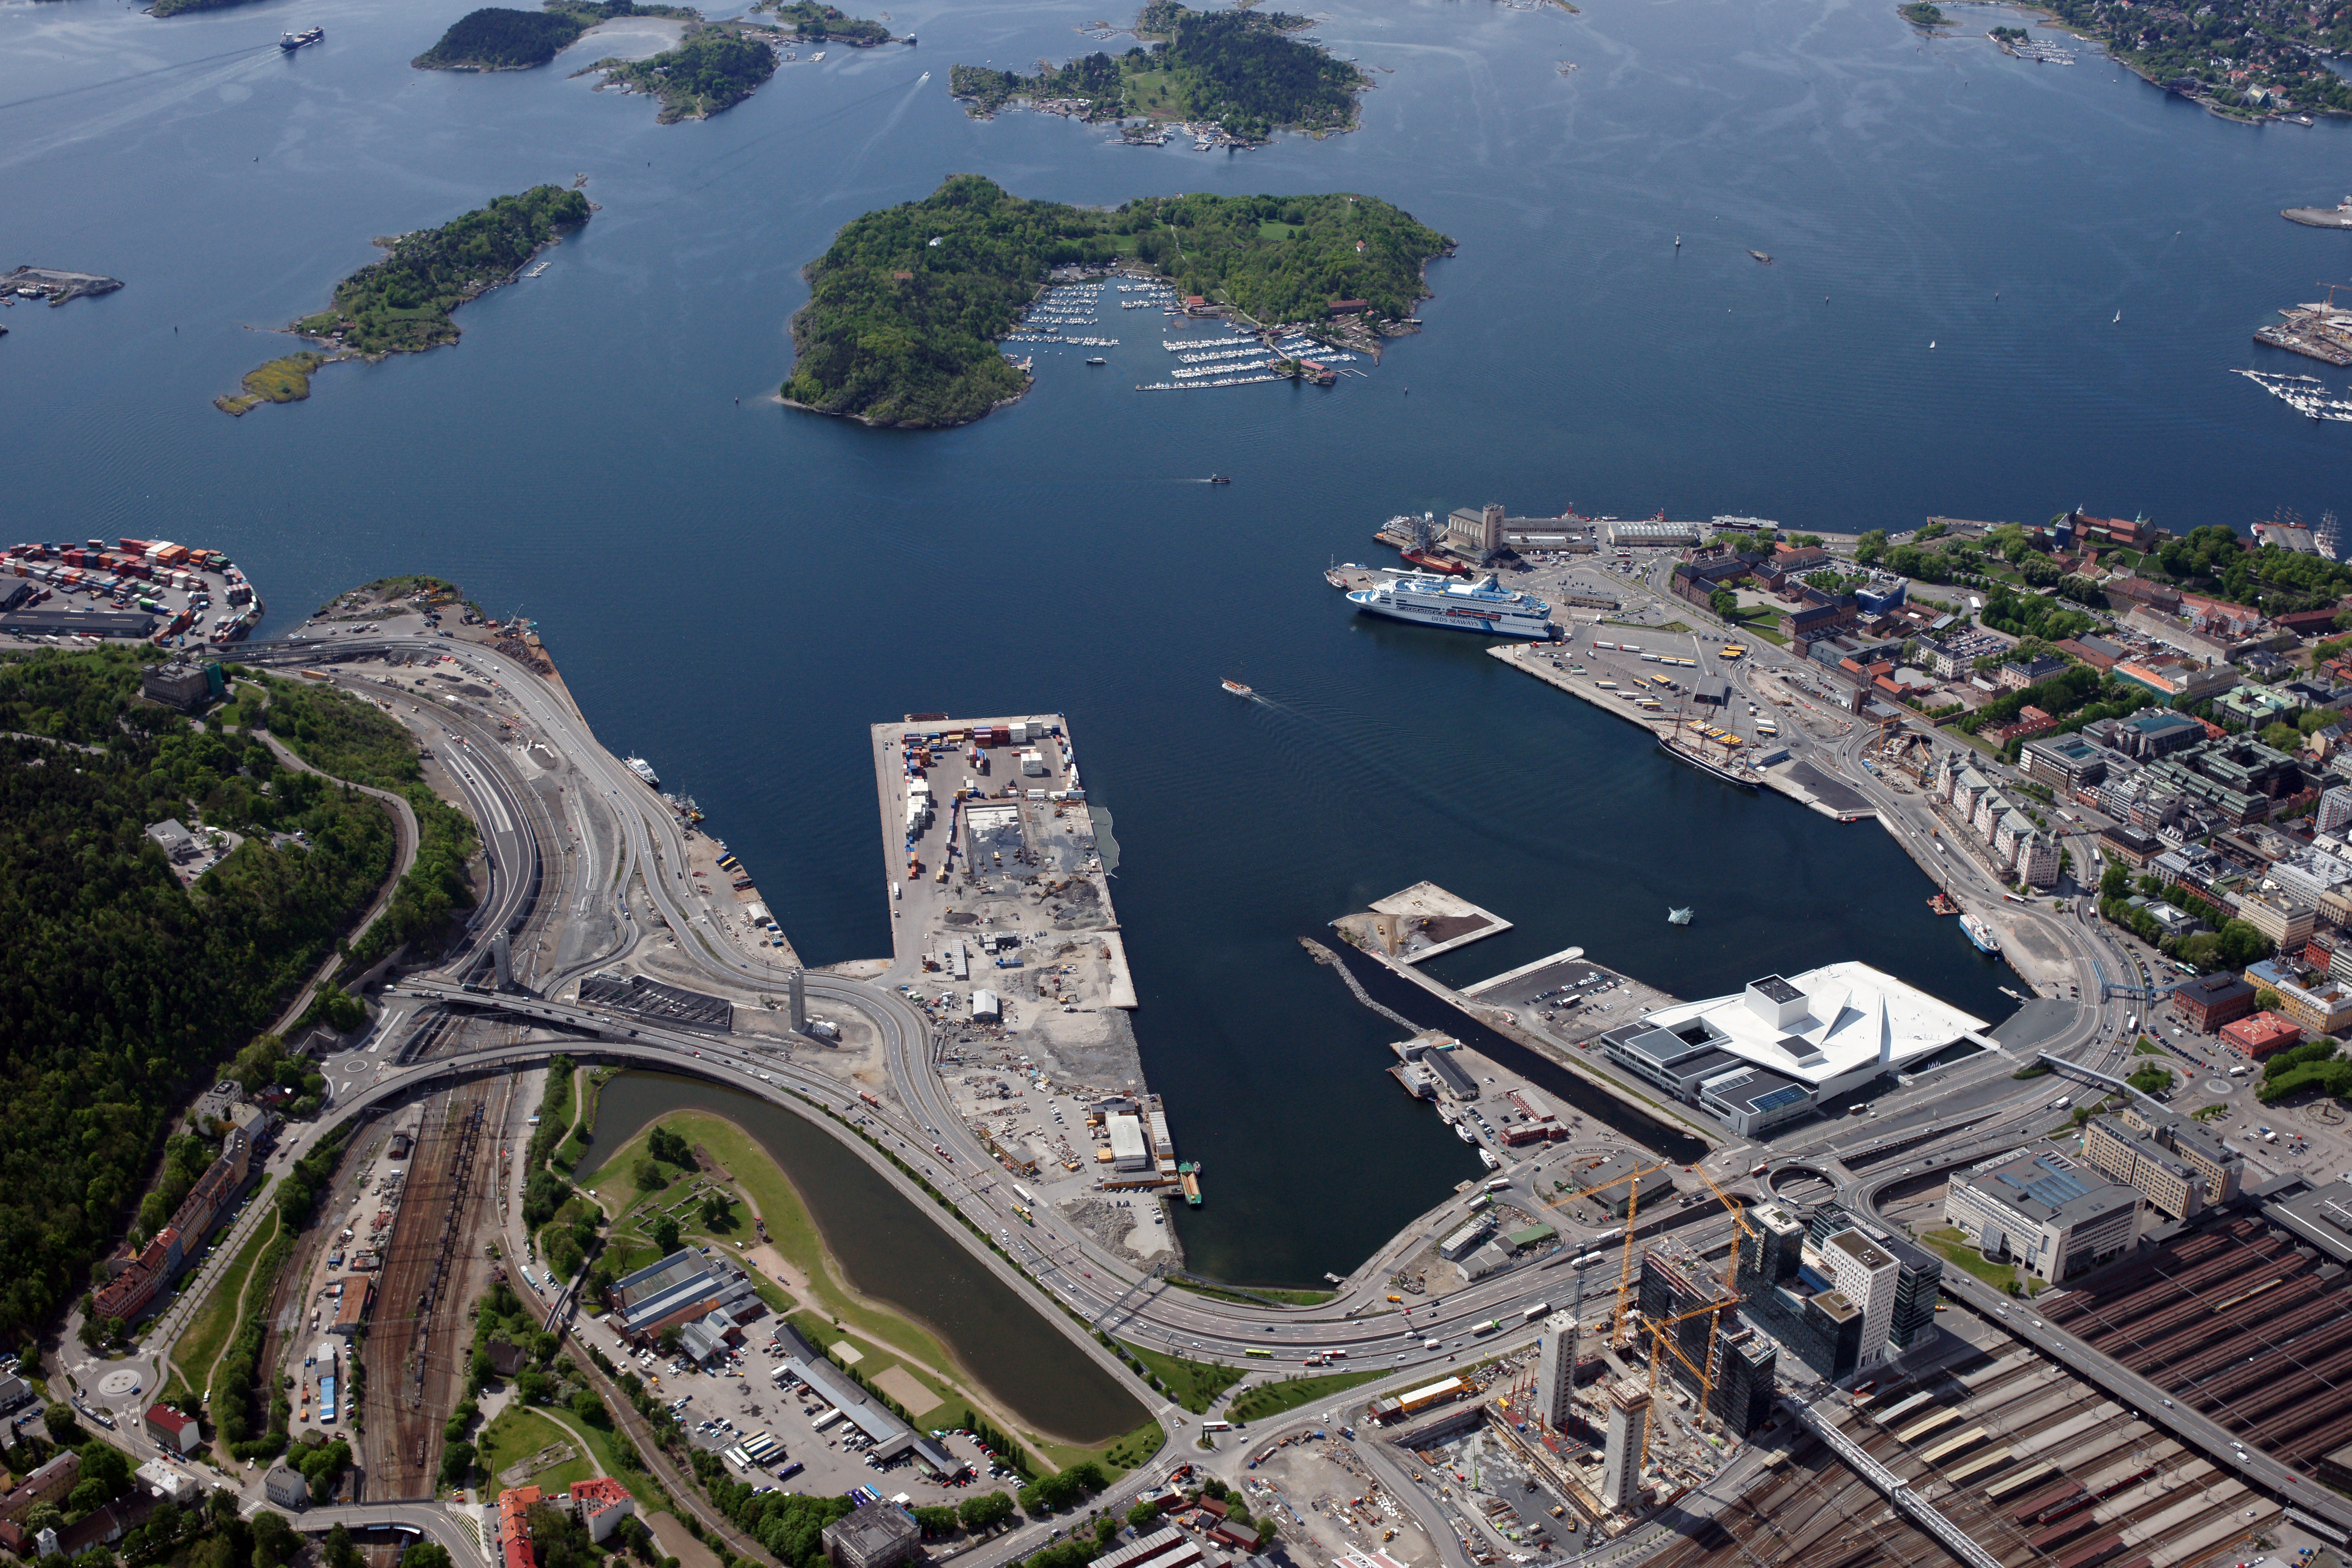 Oslo seen from above, Photo: Lasse Tur